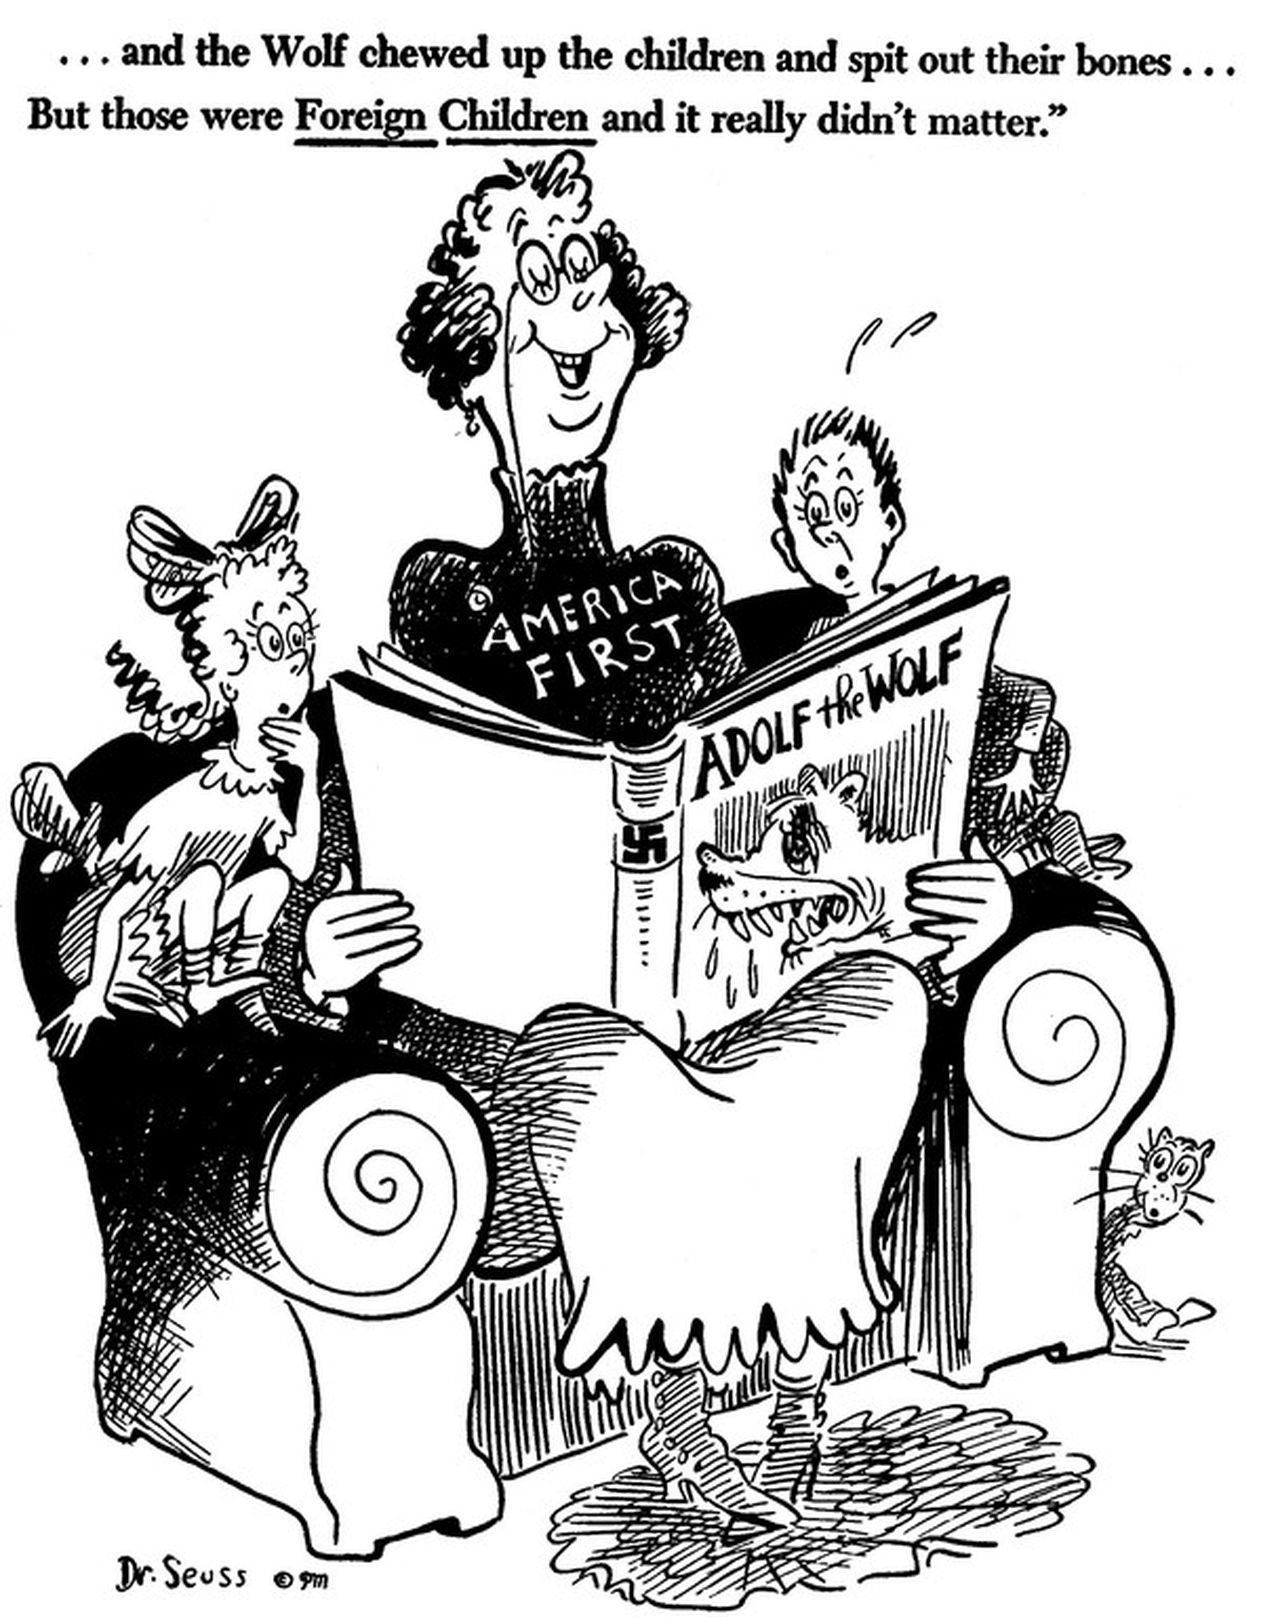 Dr. Seuss on America First 4